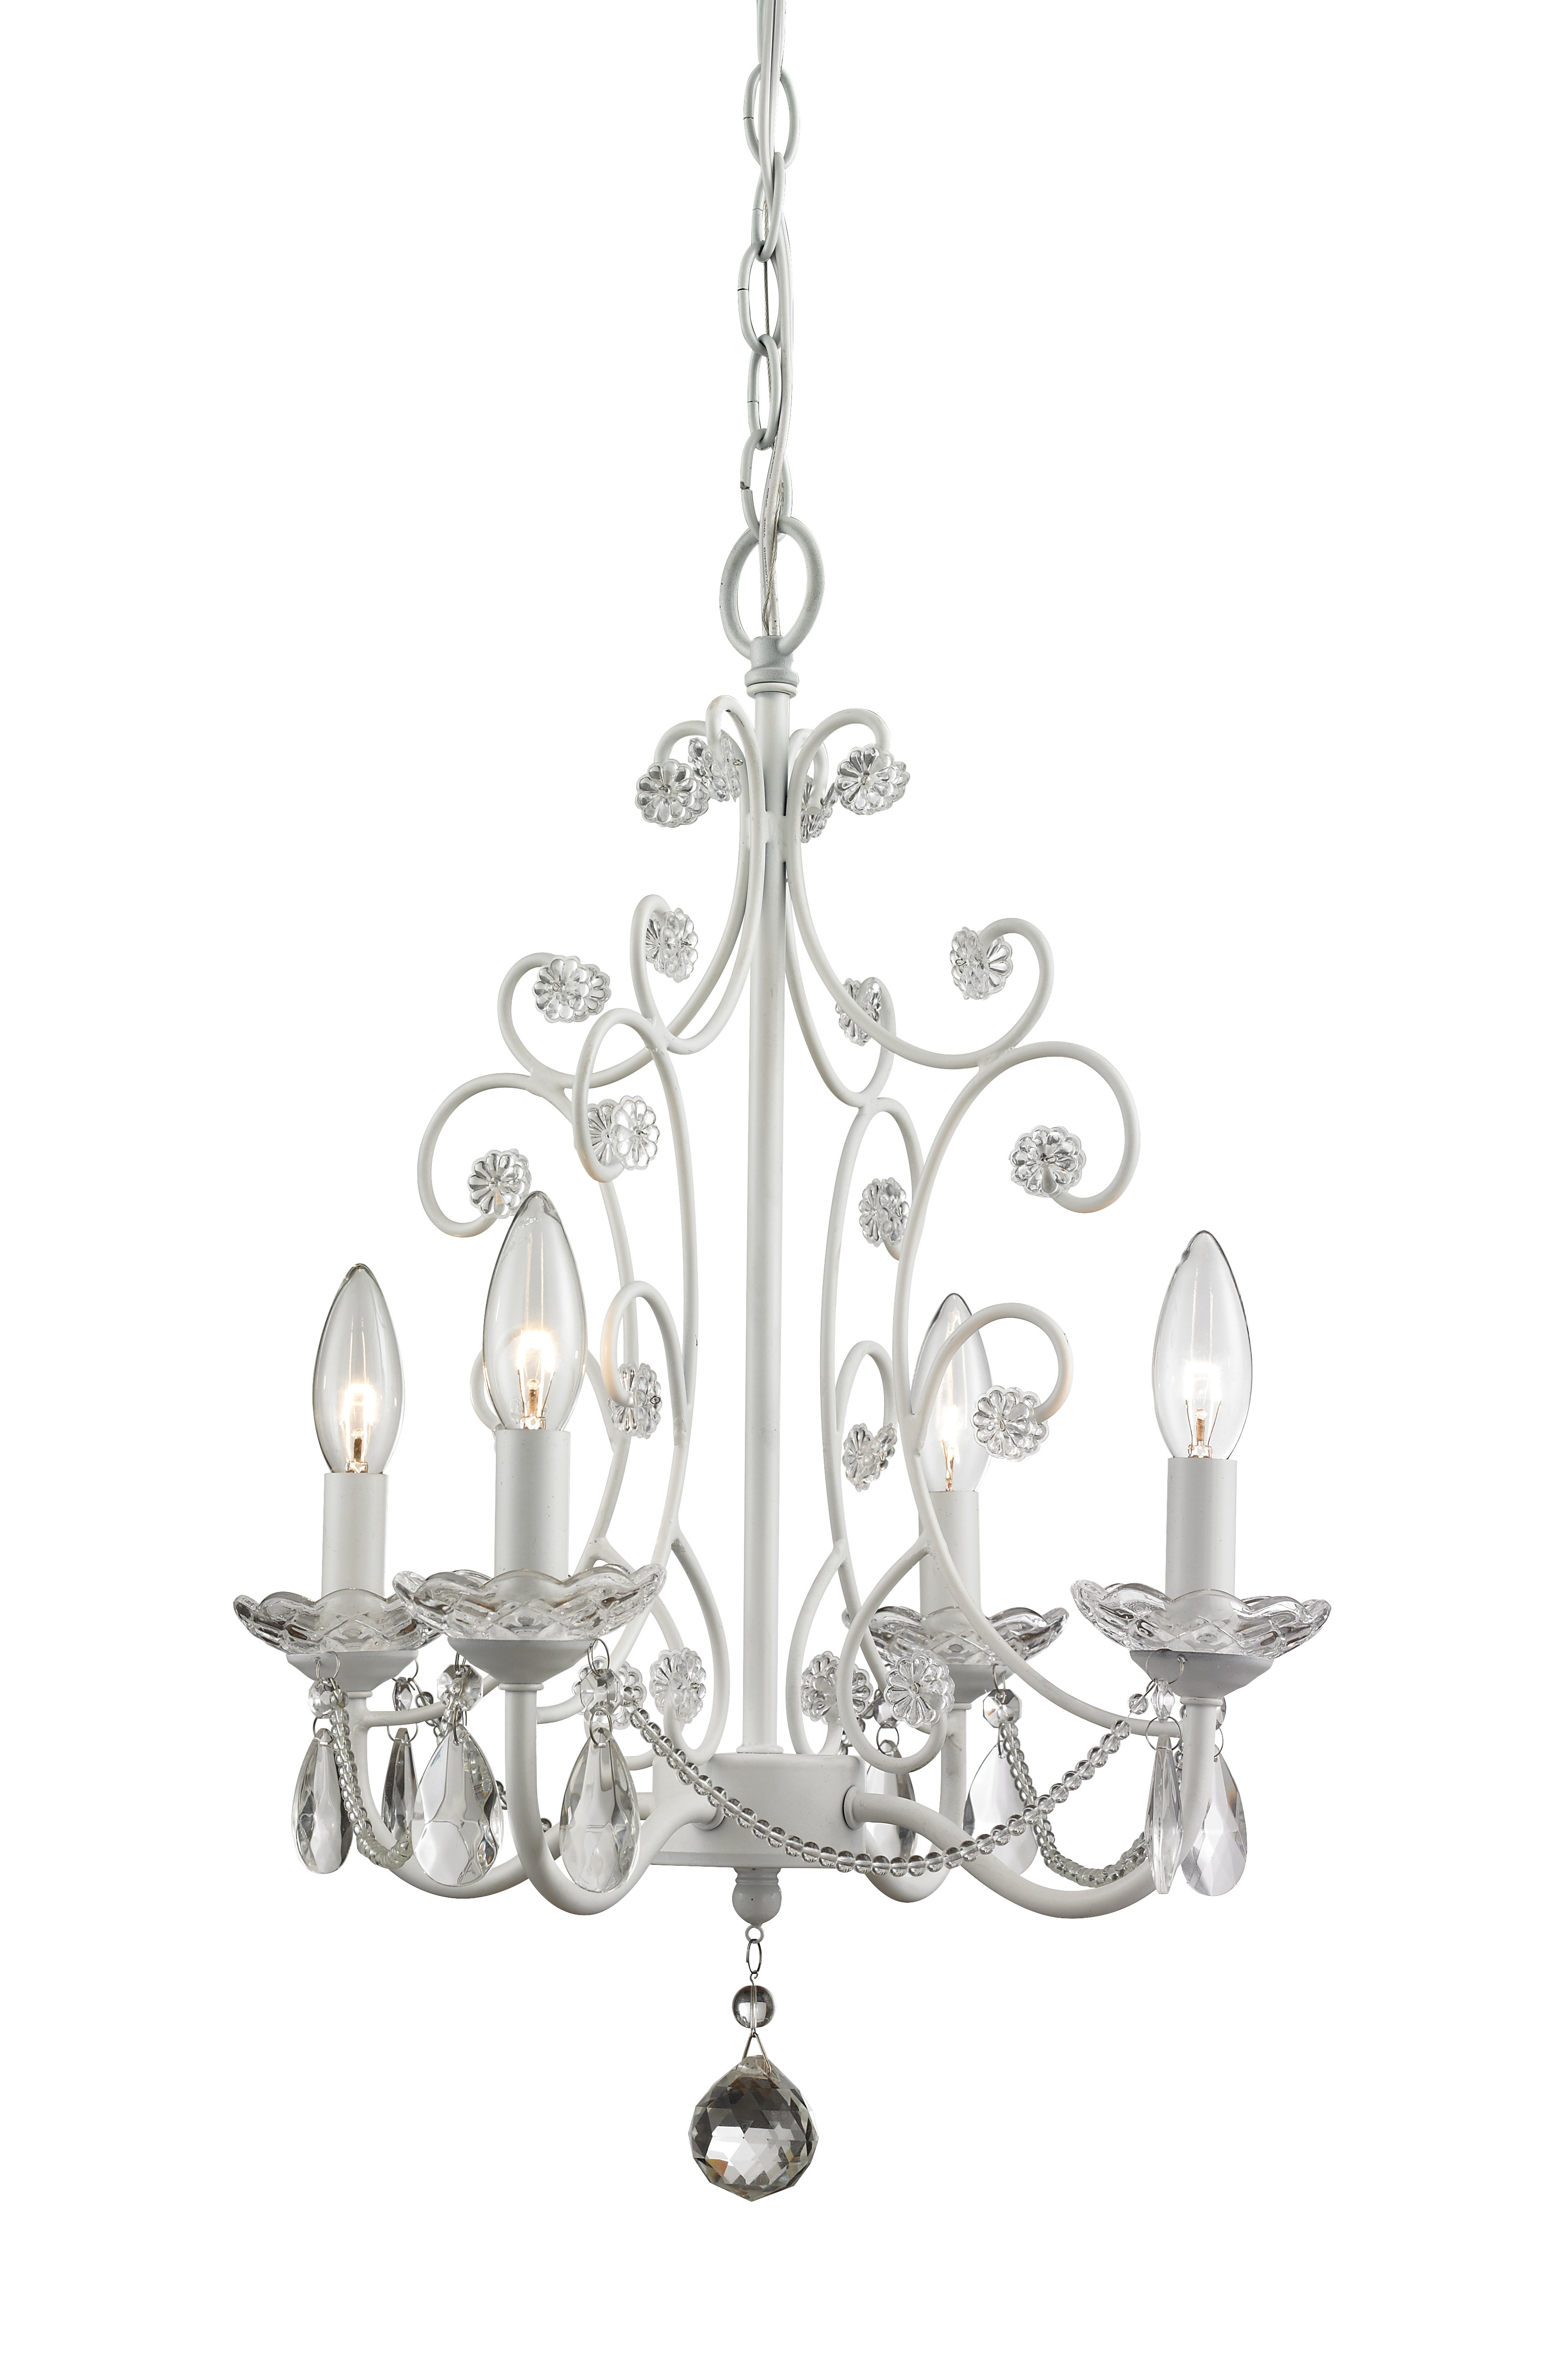 Aldora 4 Light Candle Style Chandeliers Pertaining To Most Recent Aquilla 4 Light Candle Style Chandelier (View 9 of 25)